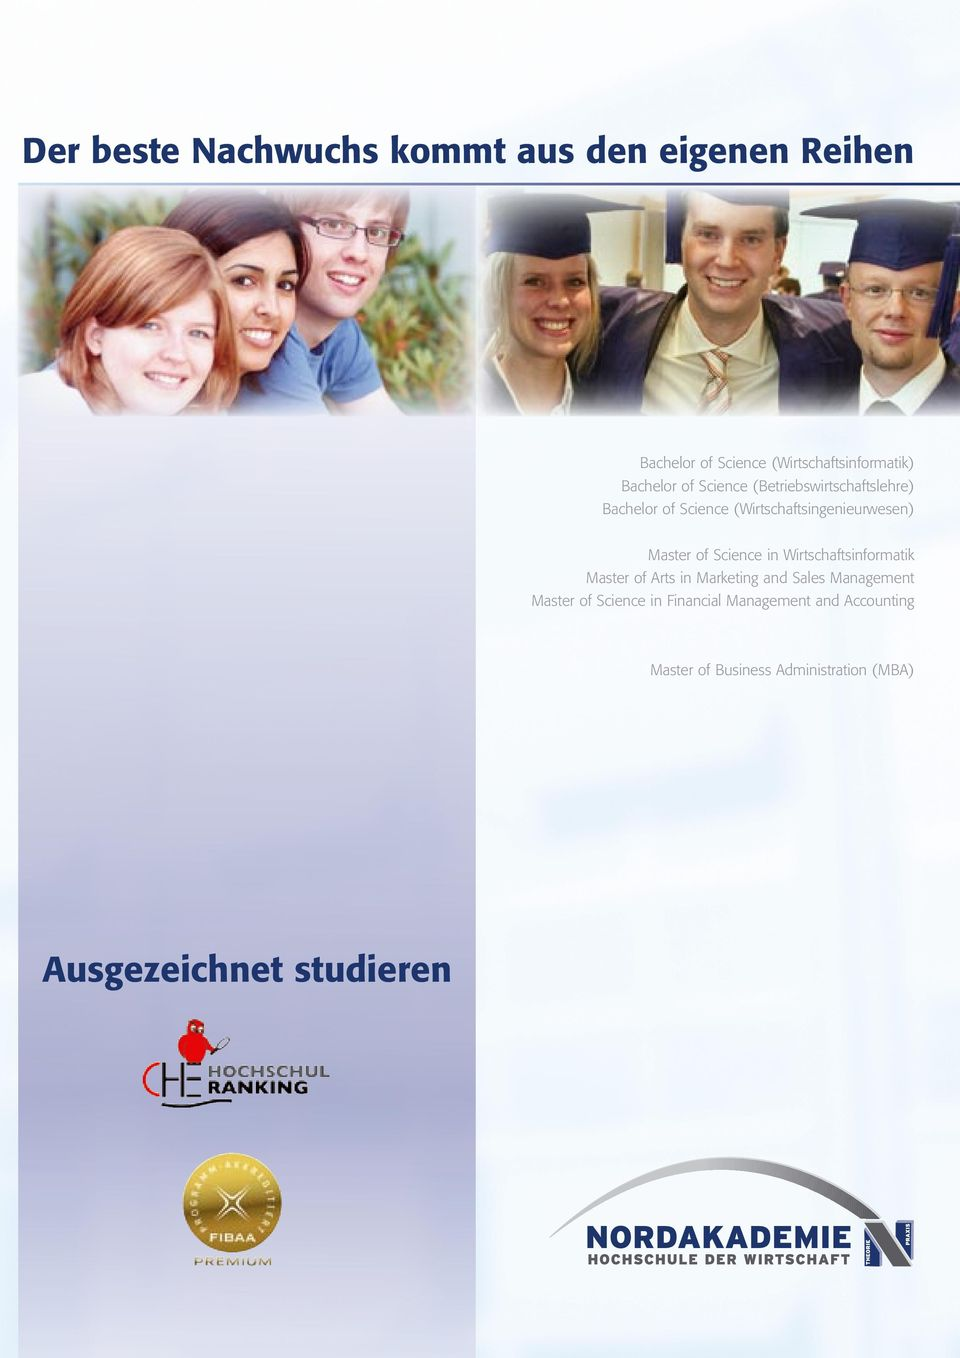 Master of Science in Wirtschaftsinformatik Master of Arts in Marketing and Sales Management Master